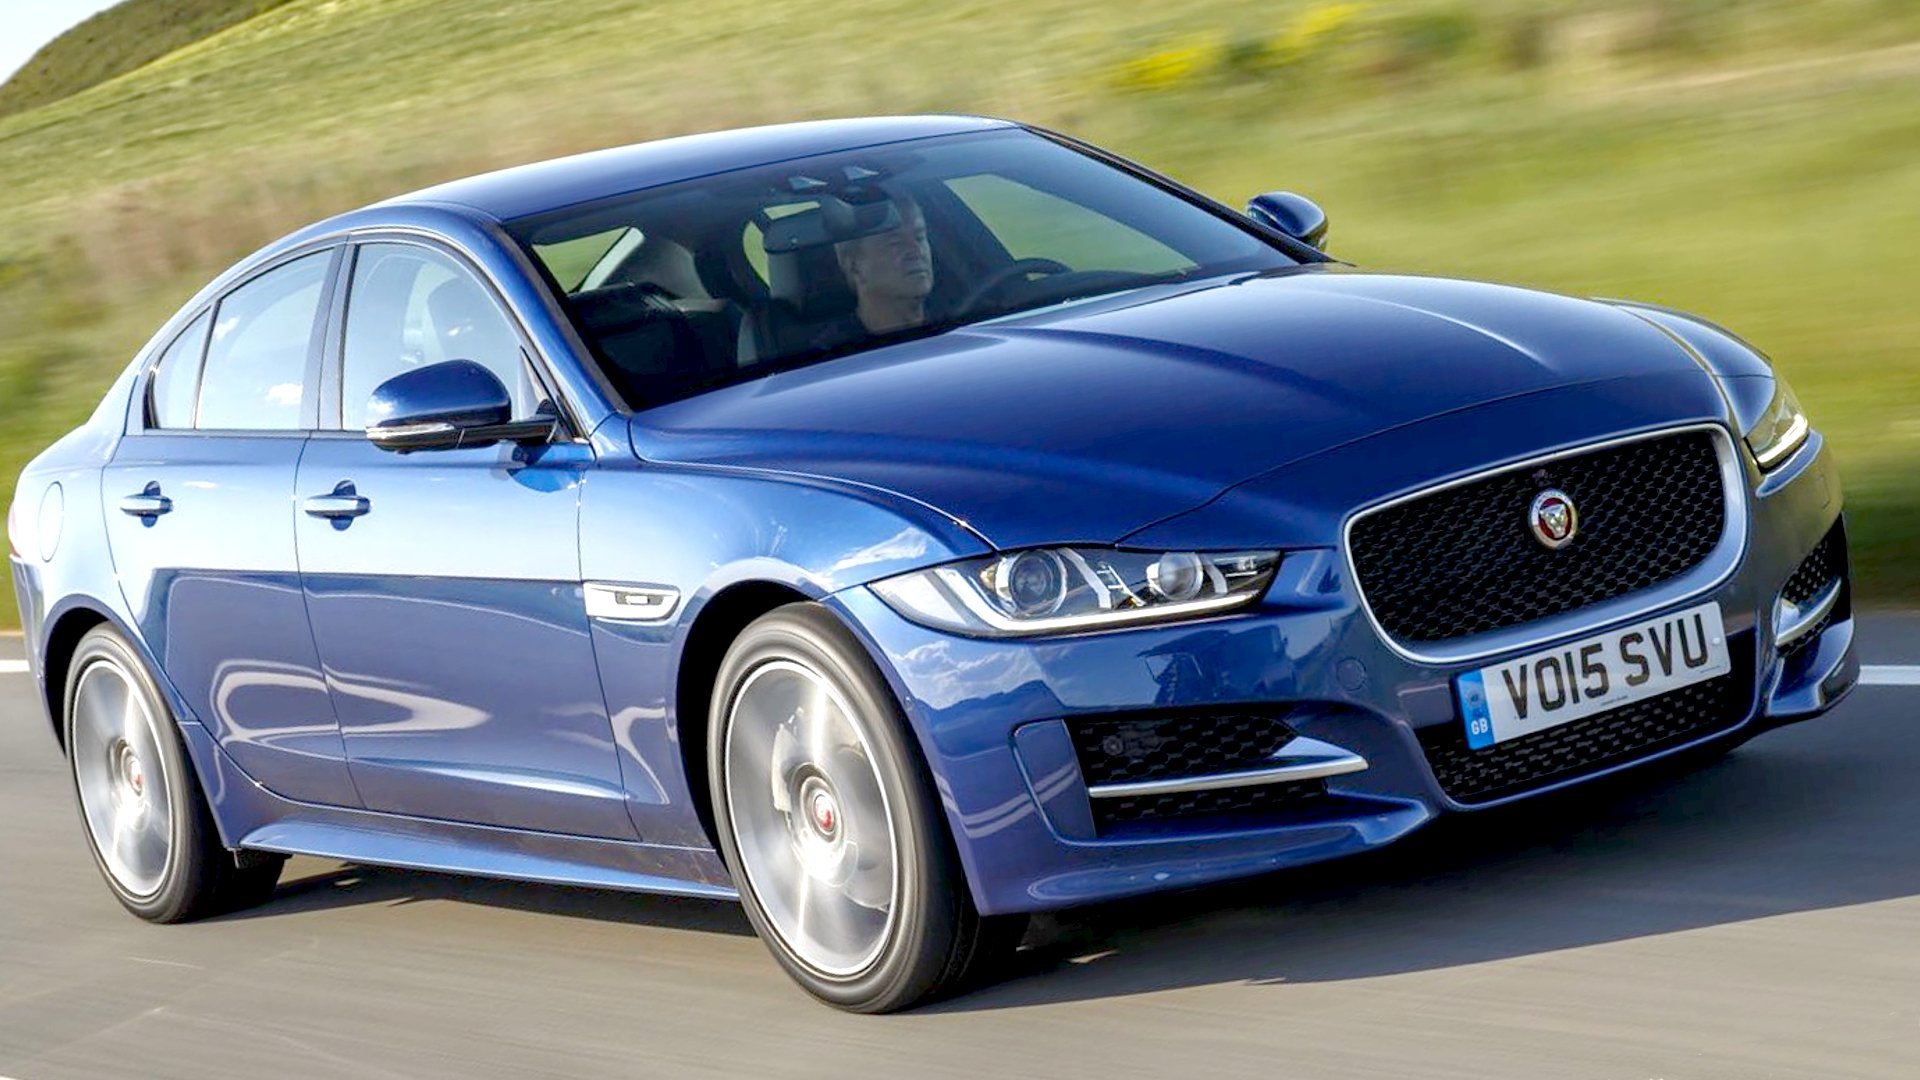 New 2019 Jaguar XE Price